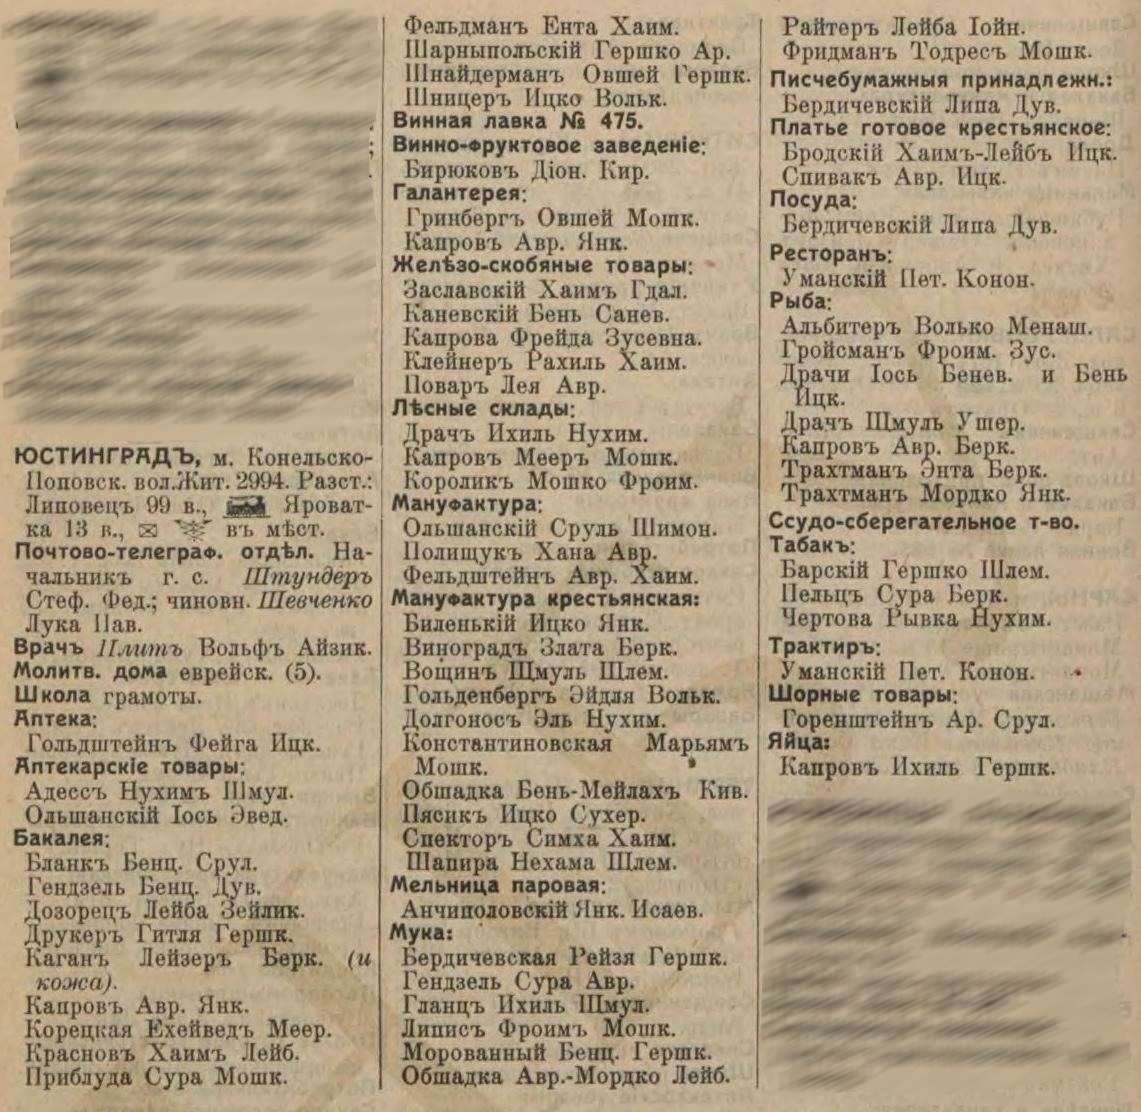 Justingrad enterpreneurs list from Russian Empire Business Directories by 1913